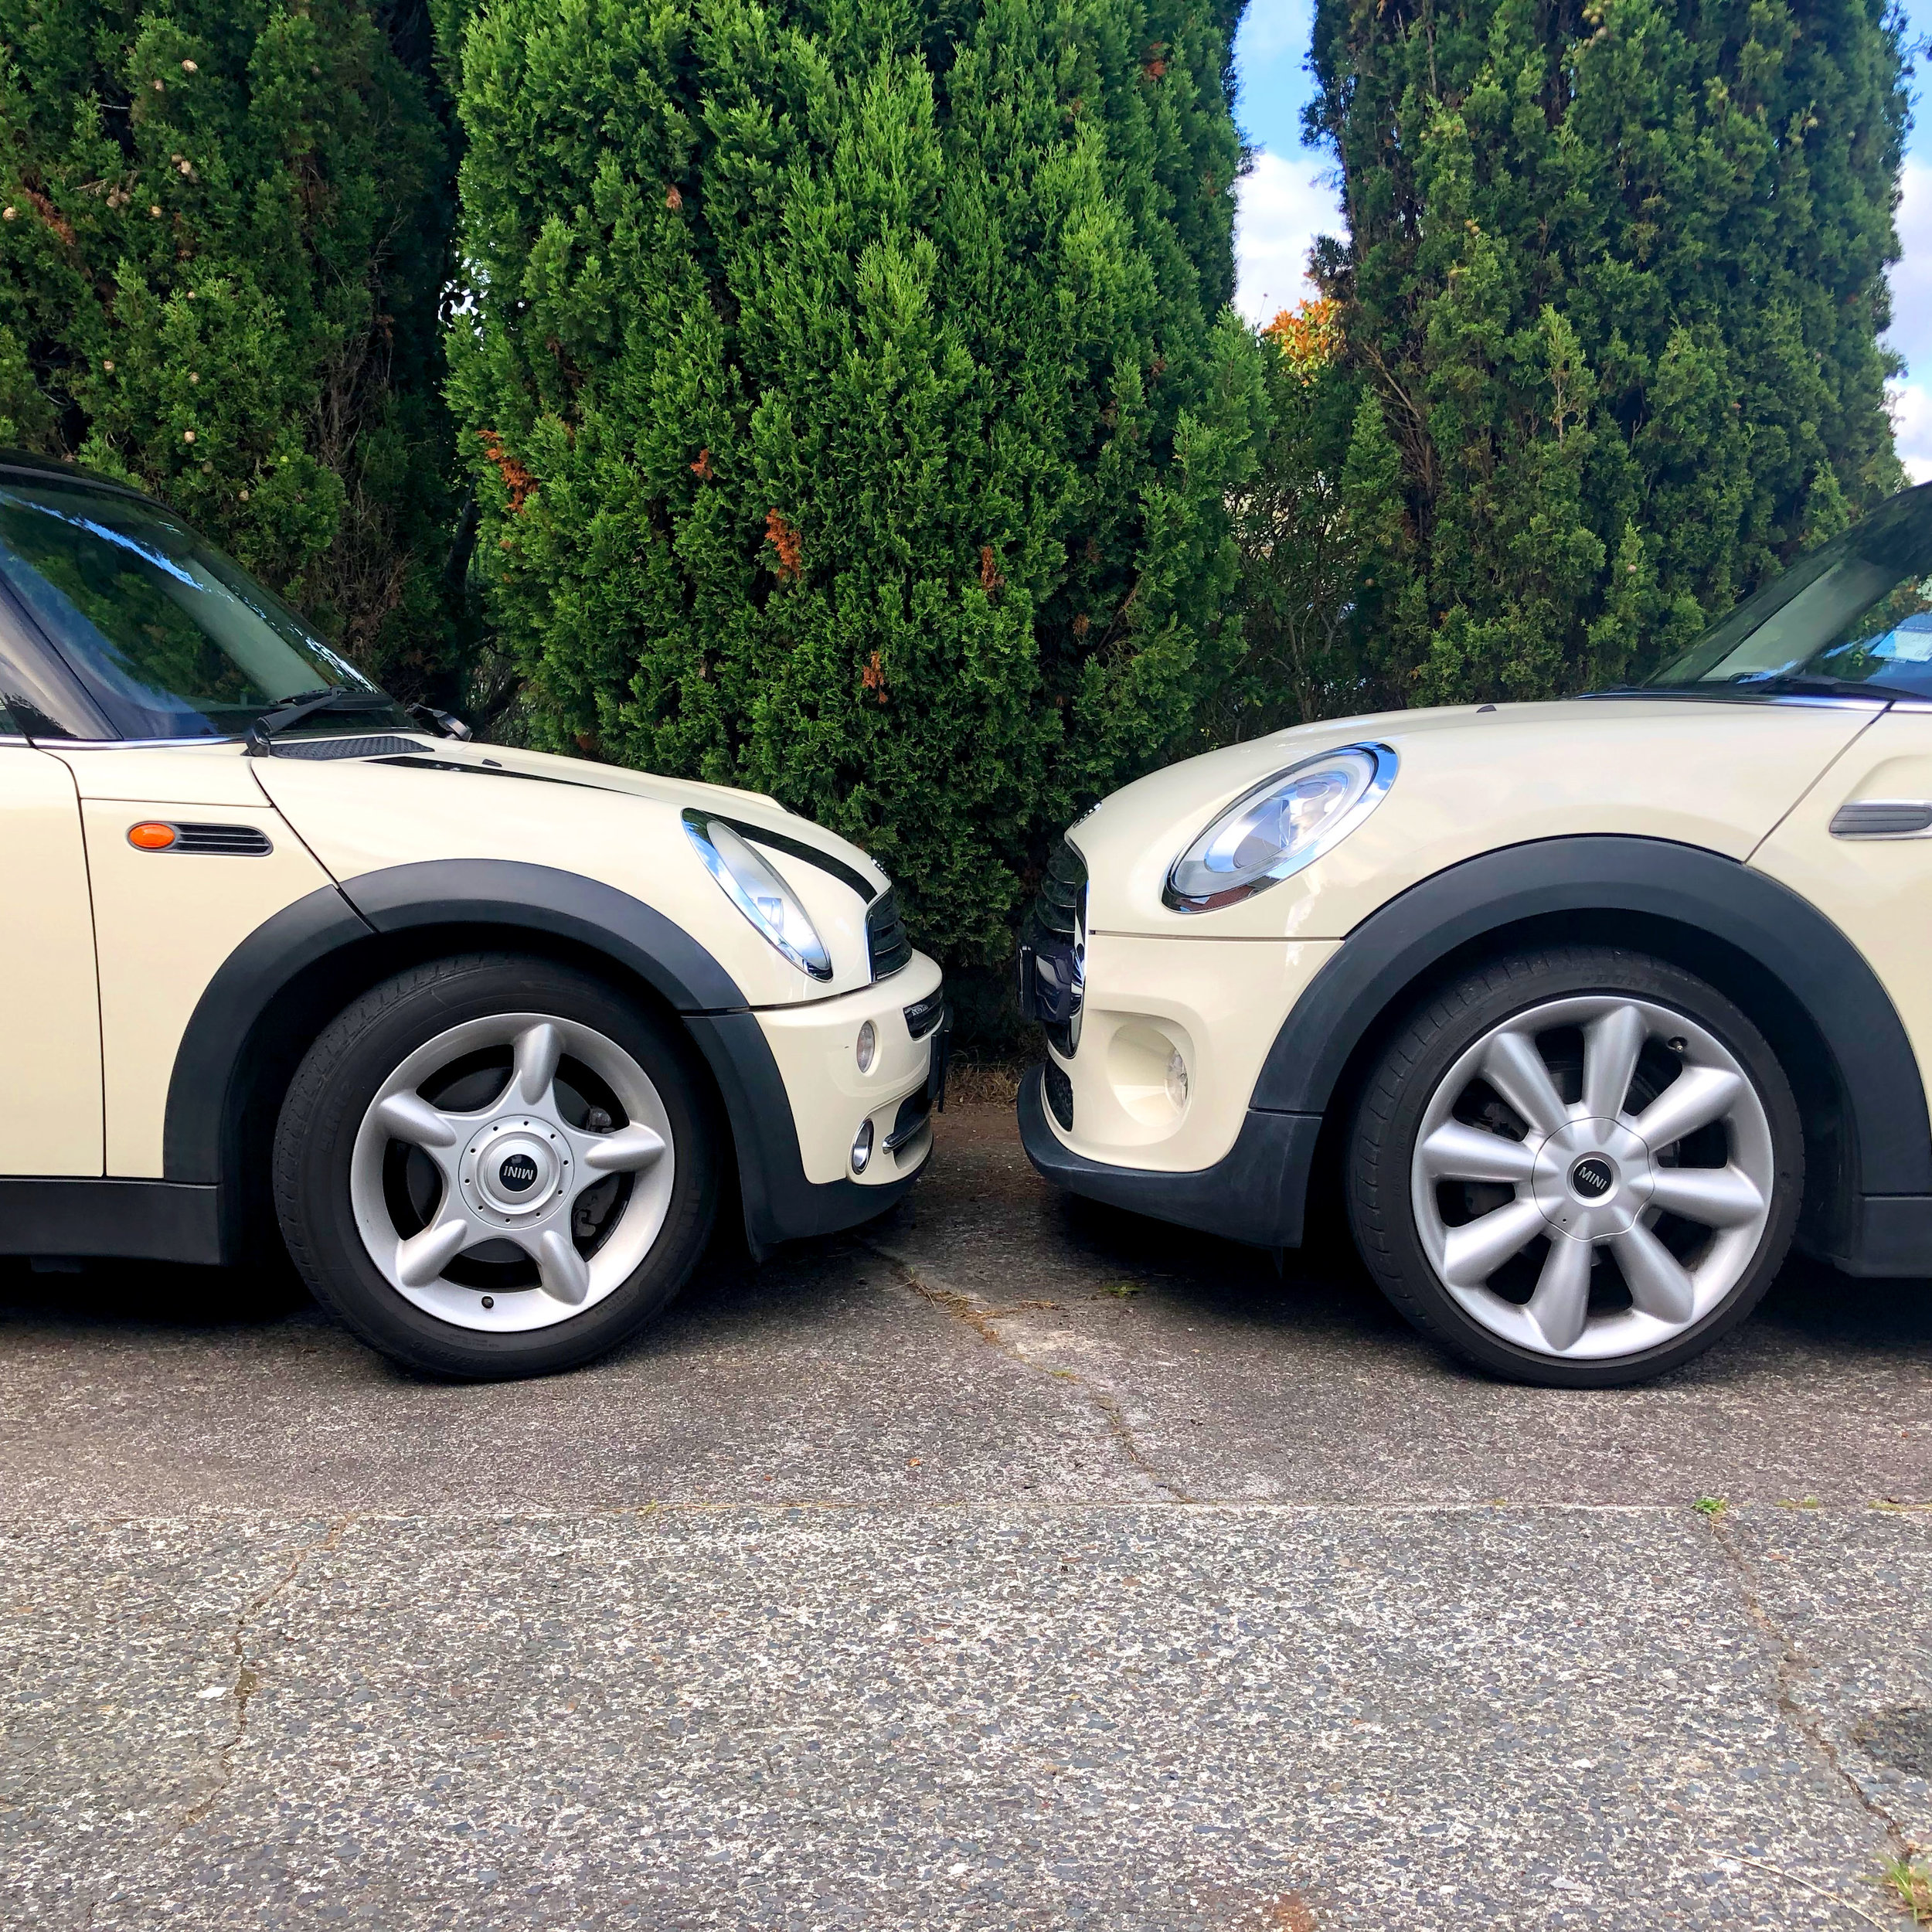 2004 vs 2014 Mini Coopers.